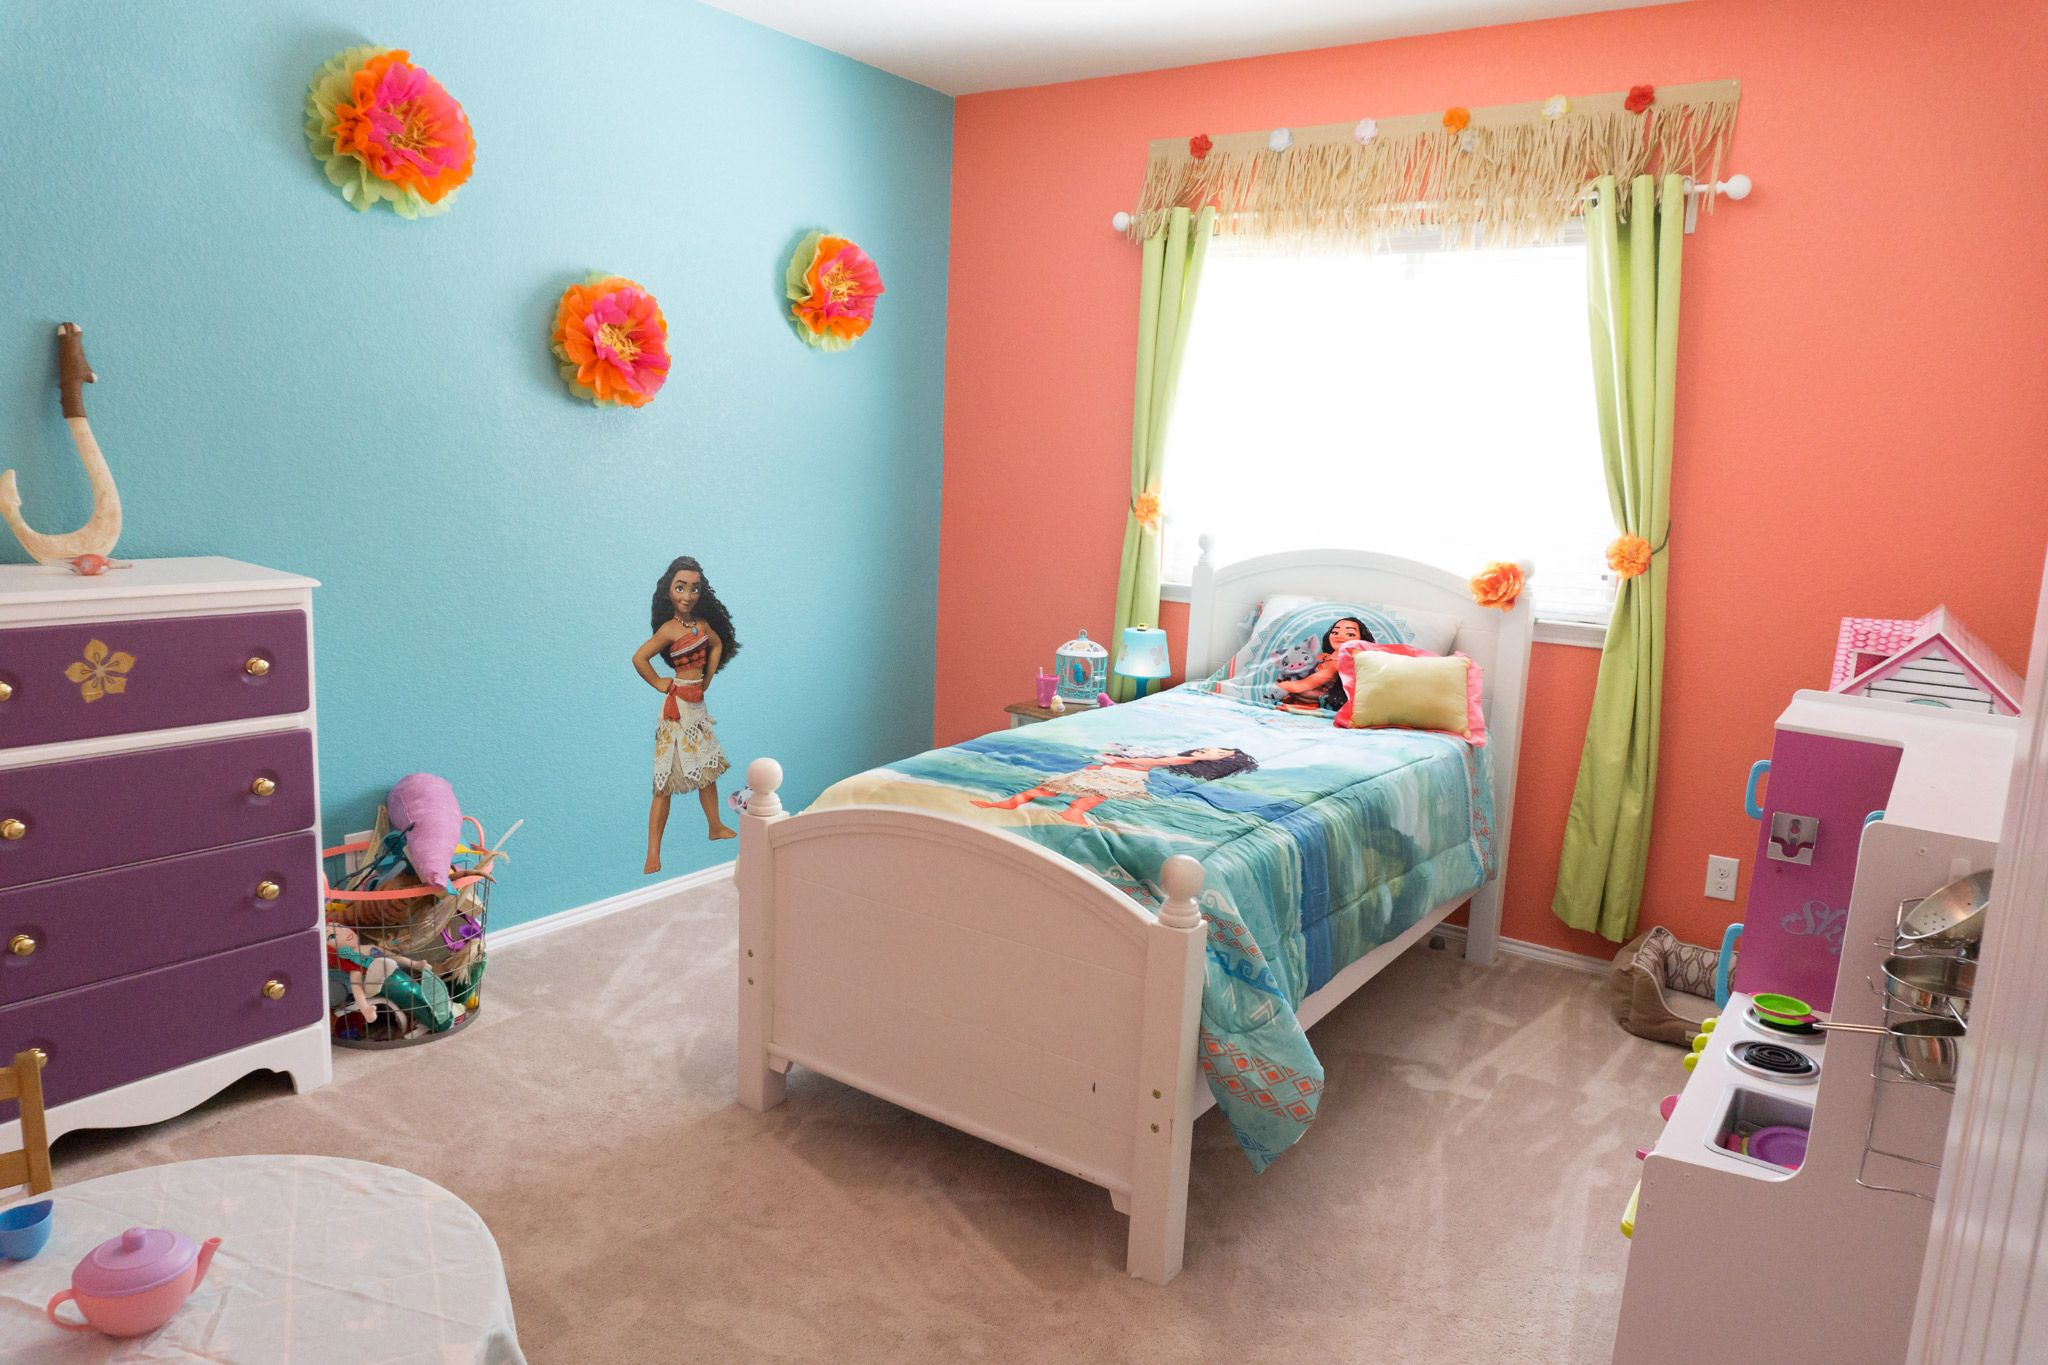 Bedroom Theme Moana Themed Girls Bedroom Cailyns Room In New House